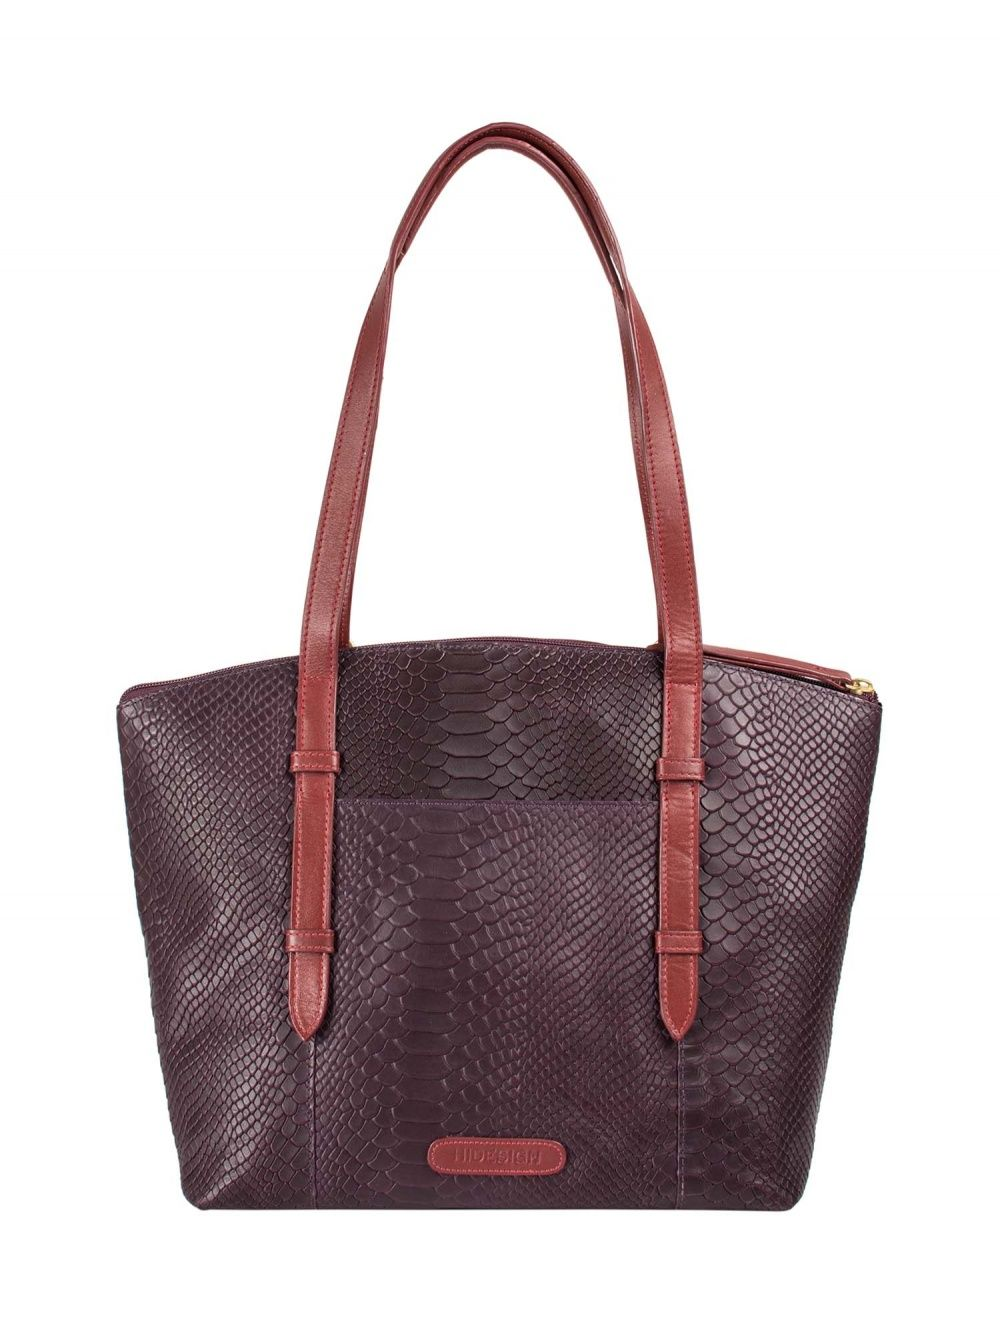 limpid in sight new selection choose latest Hidesign Virgo 01 Sb Purple Women's Tote